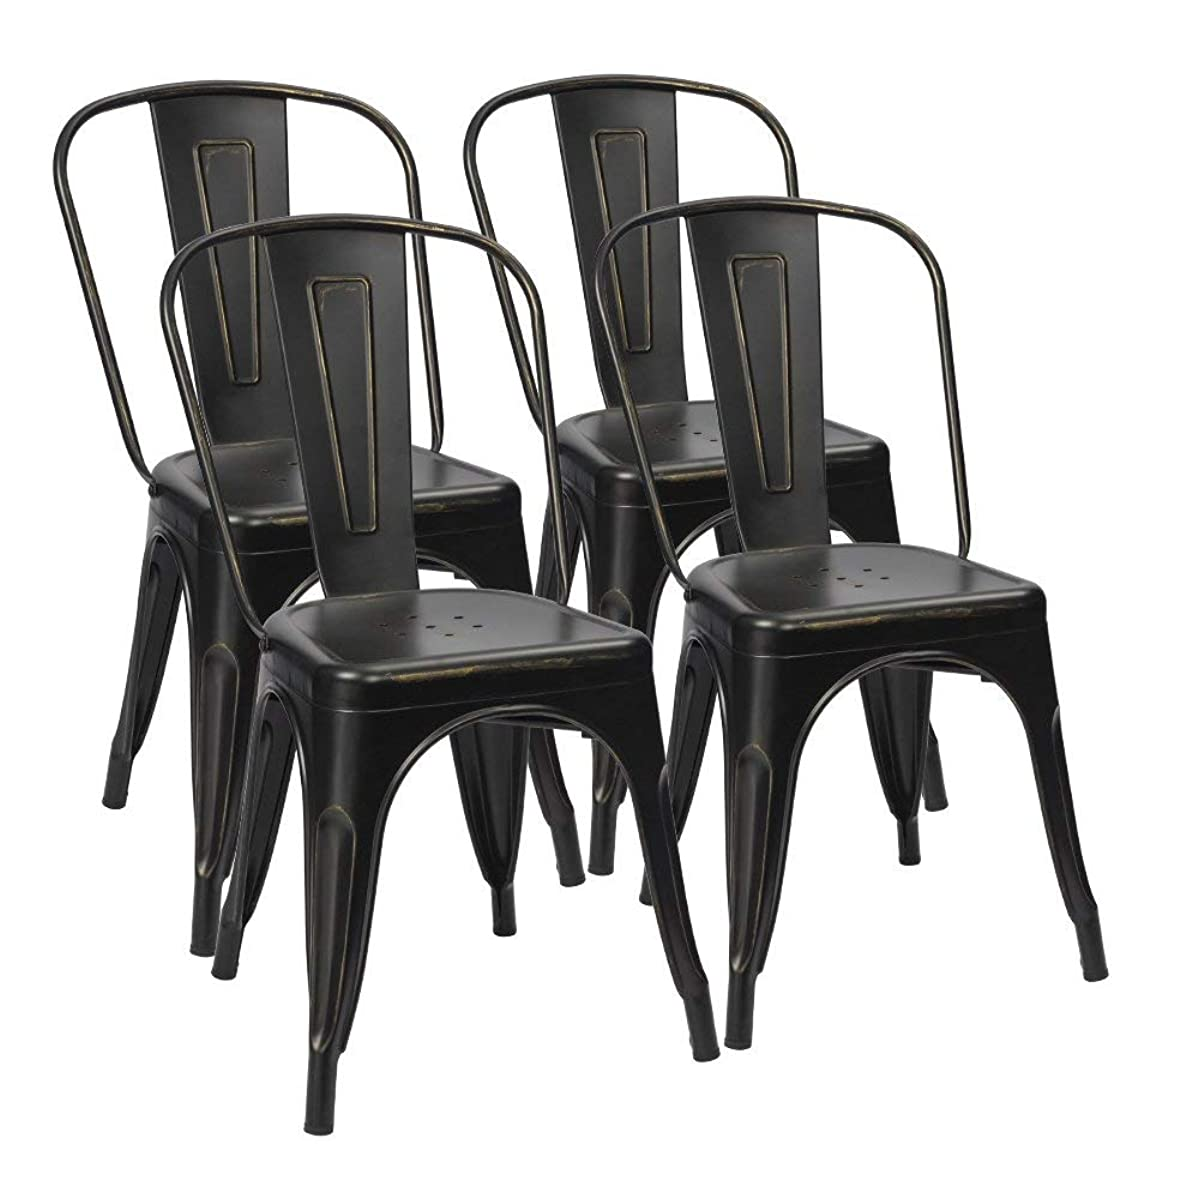 Furmax Metal Chairs Distressed Style Black Indoor/Outdoor Use Stackable Chic Dining Bistro Cafe Side Chairs Set of 4 (Distressed Black)